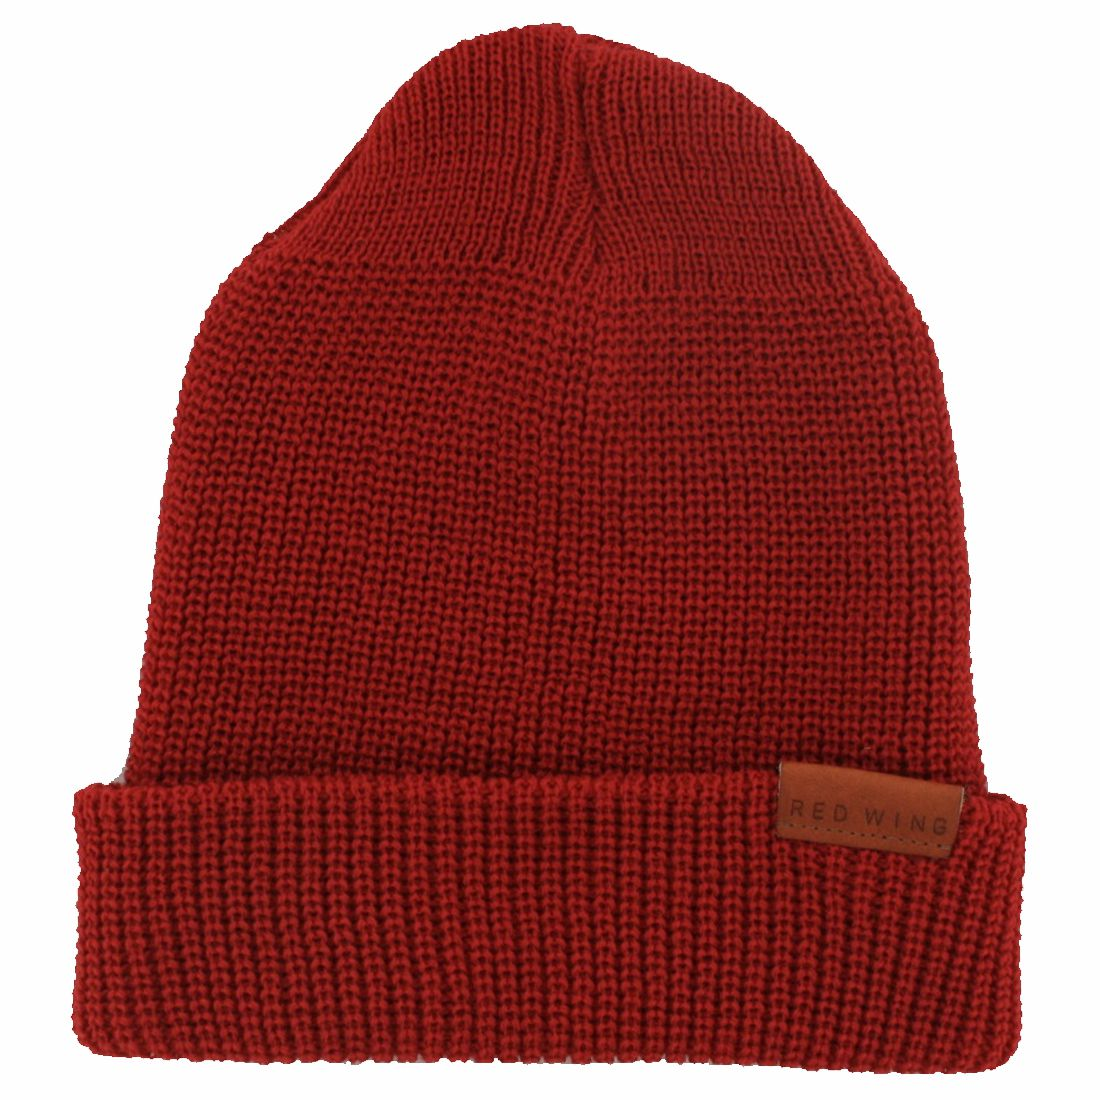 Red Wing Shoes 97493 MERINO WOOL KNIT CAP Men's wool hat - red